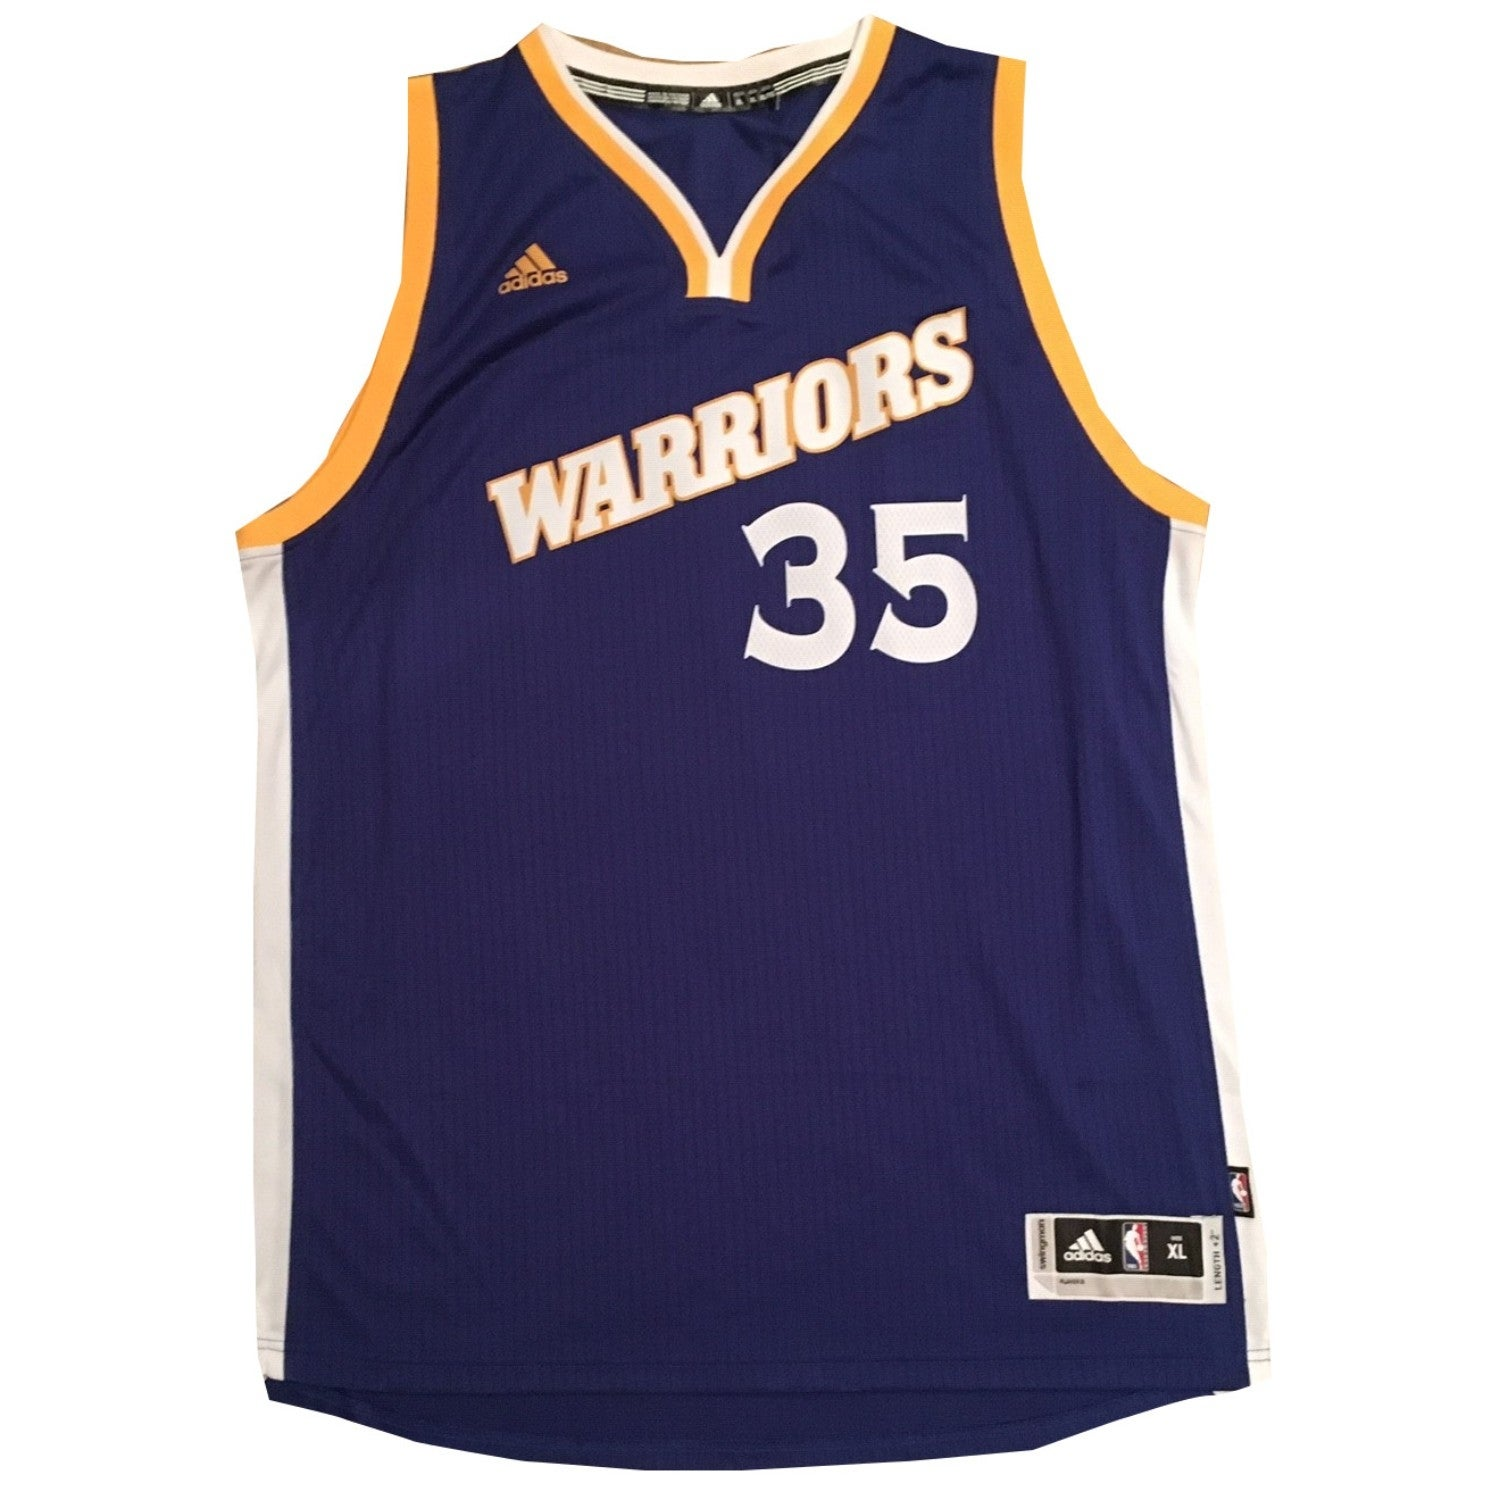 1addc8f4048 Shop Kevin Durant Autographed Golden State Warriors Signed NBA Adidas  Swingman Basketball Jersey Finals - Free Shipping Today - Overstock -  25684178